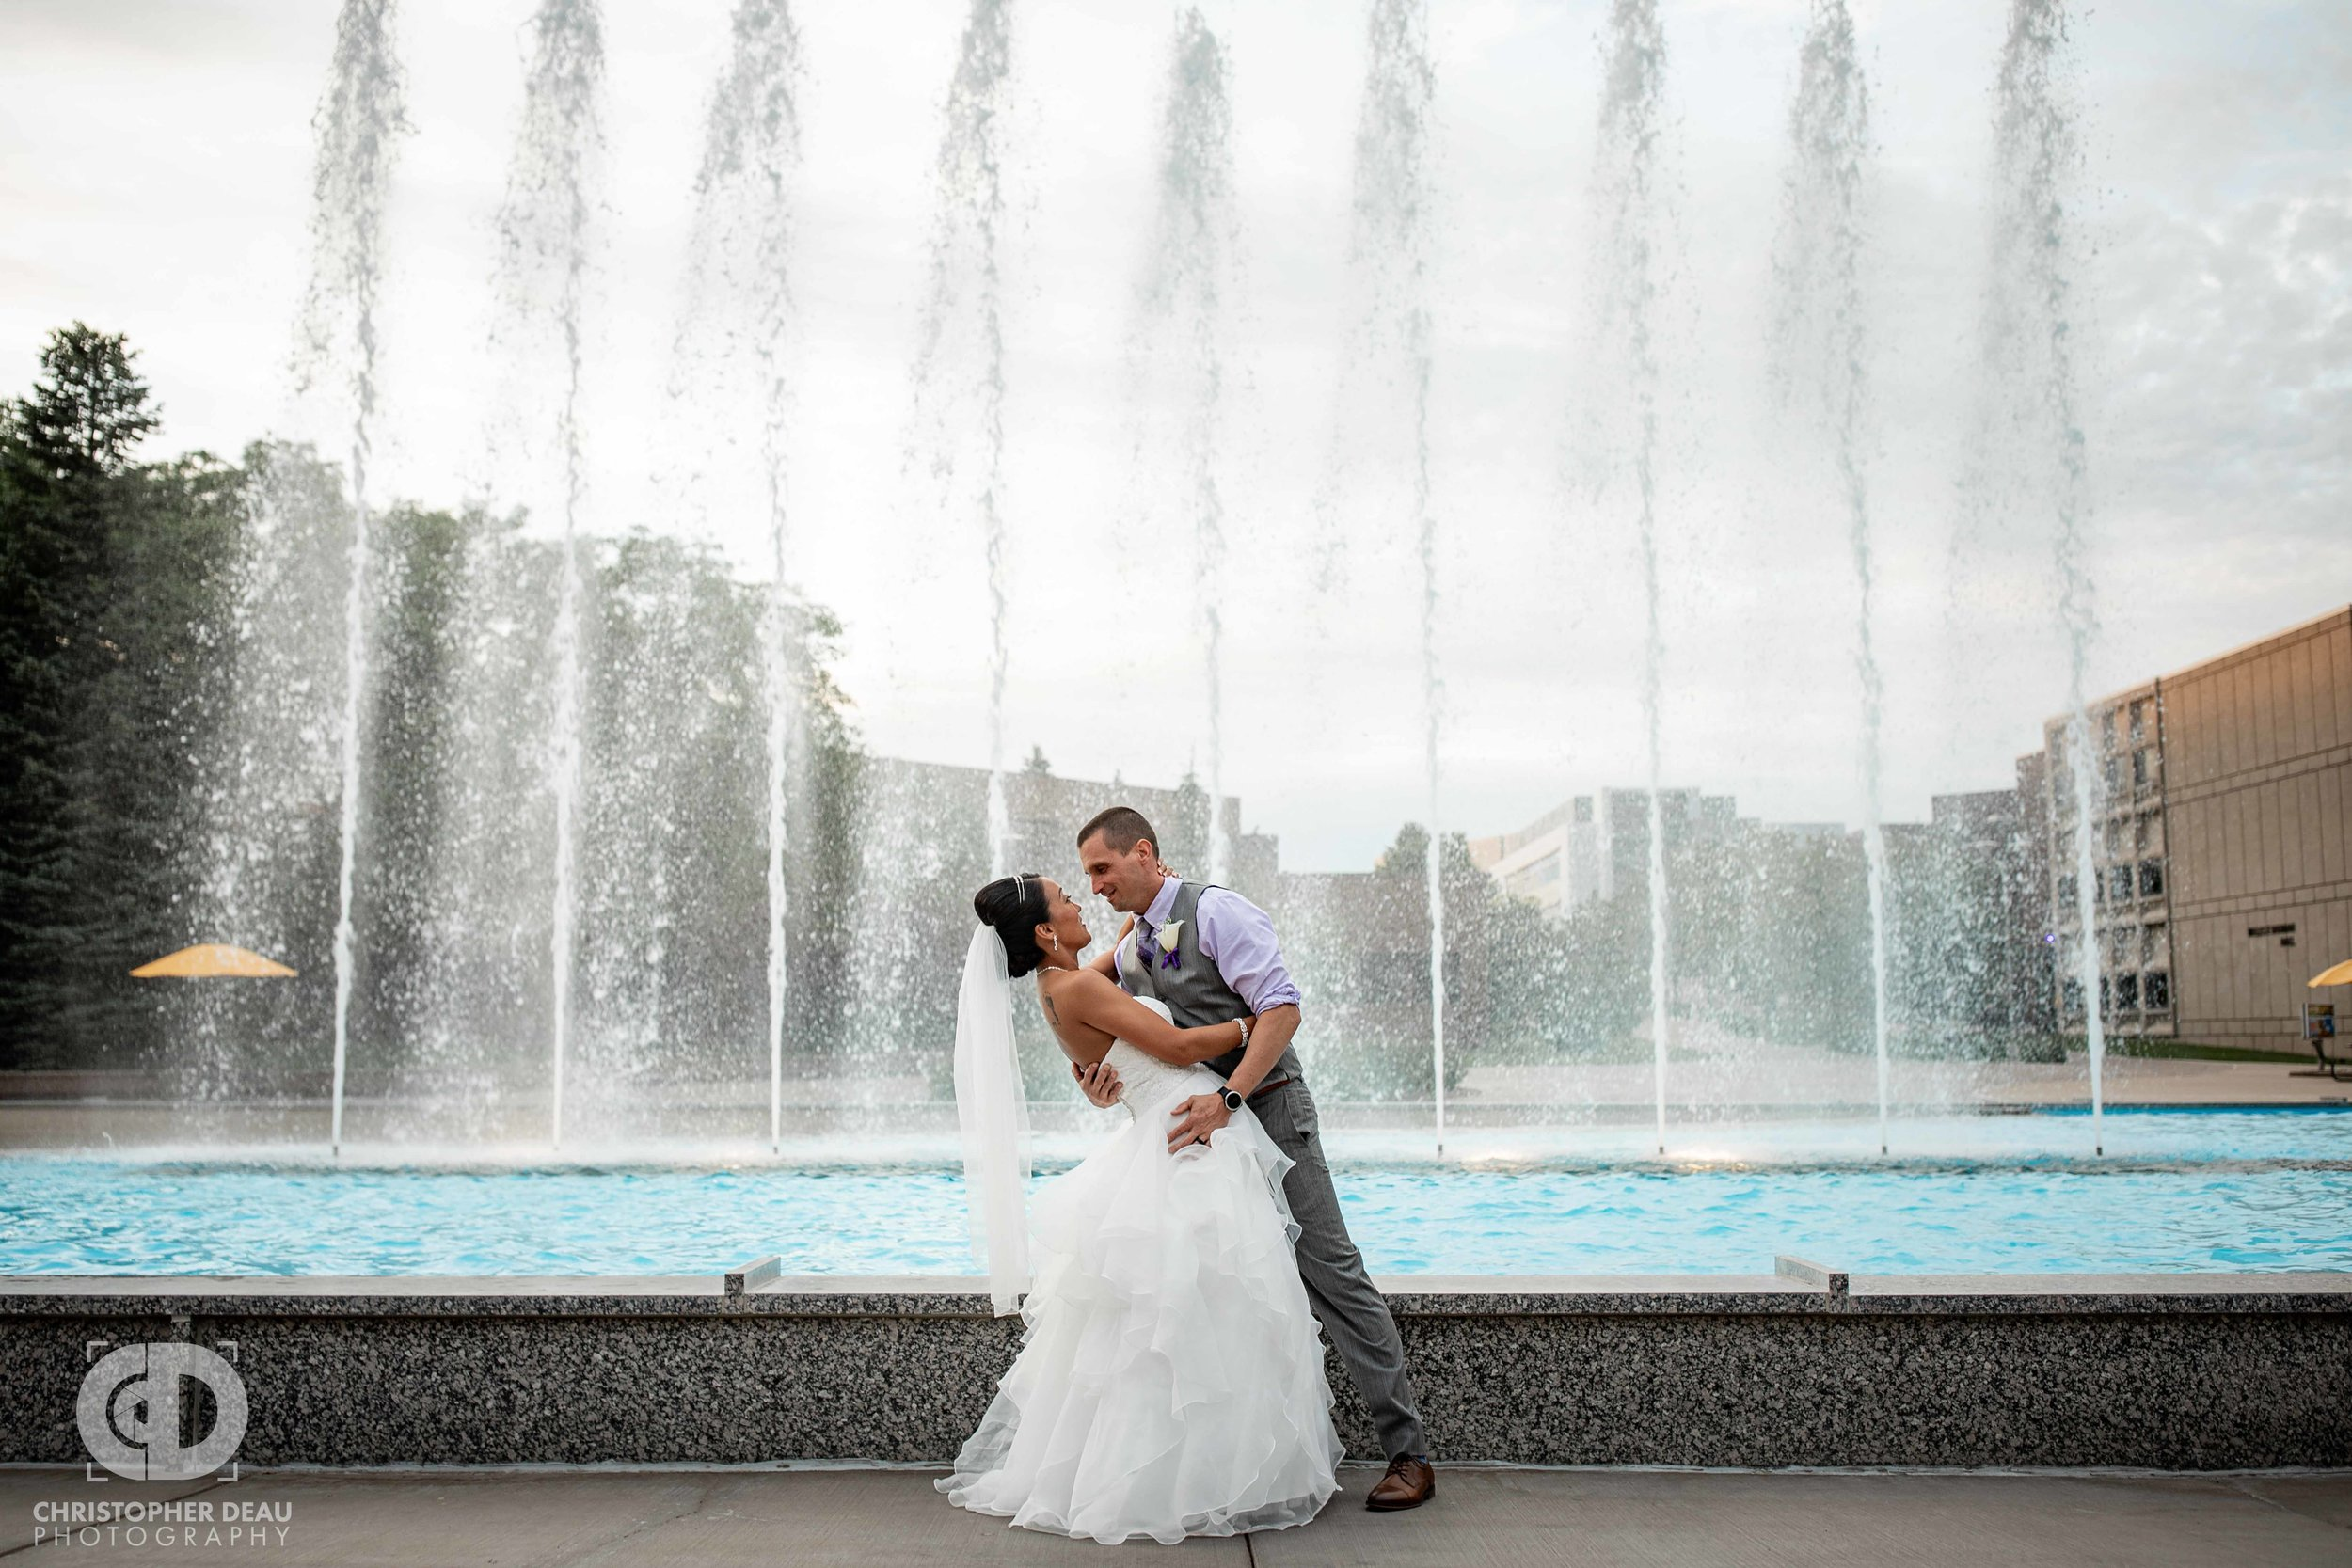 Bride and Groom in front of fountains at WMU Miller Auditorium